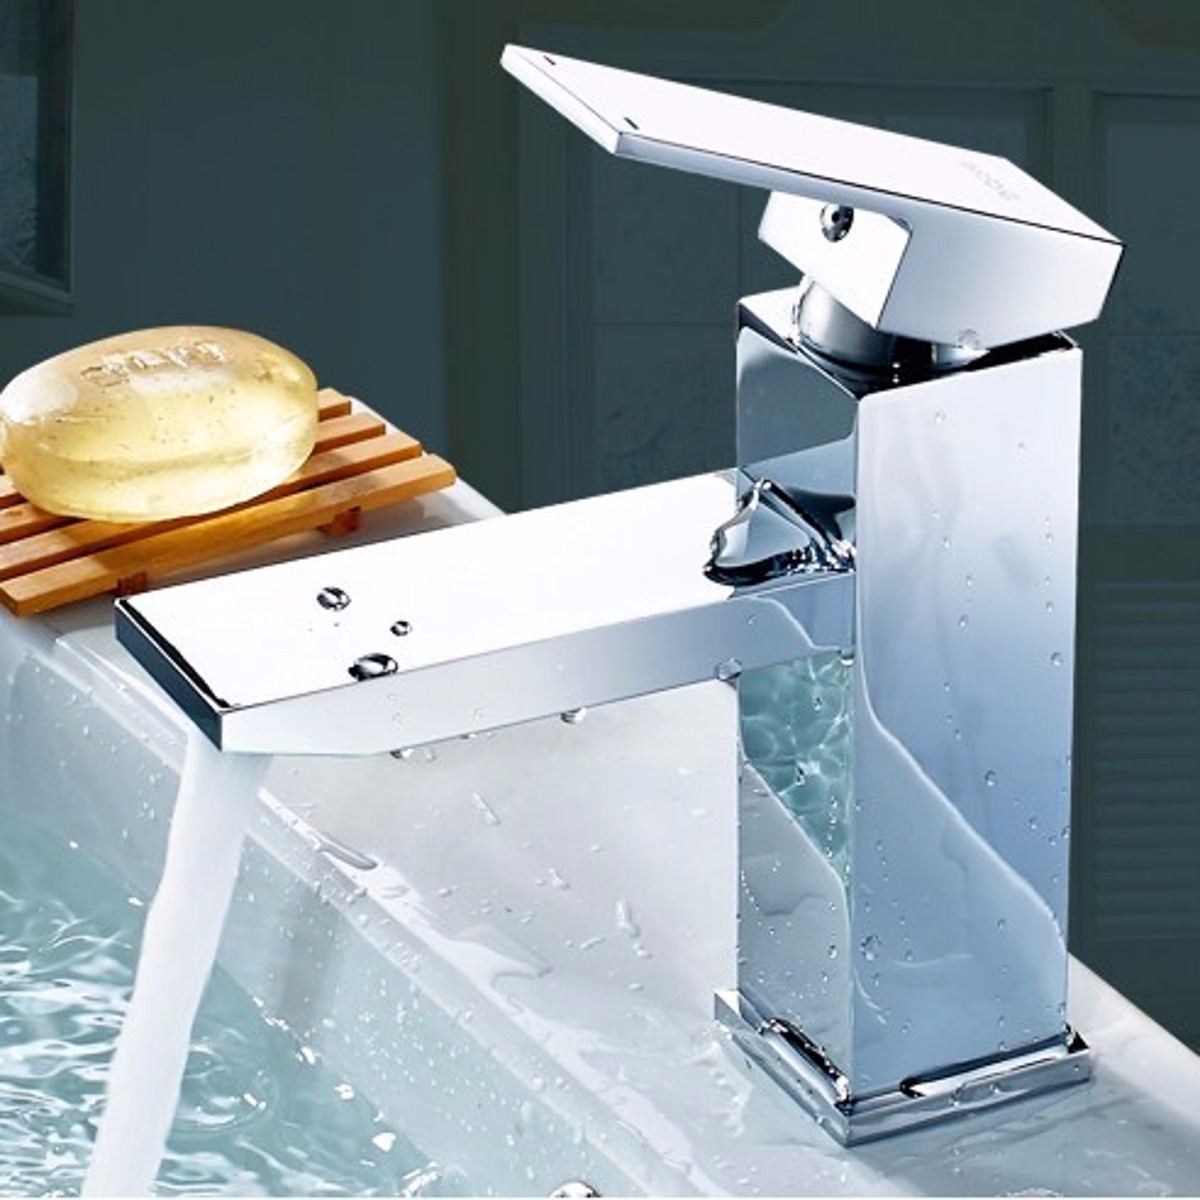 Bathroom Basin Sink Water Mixer Tap Faucet Square Single Lever Handle & 2 Hose